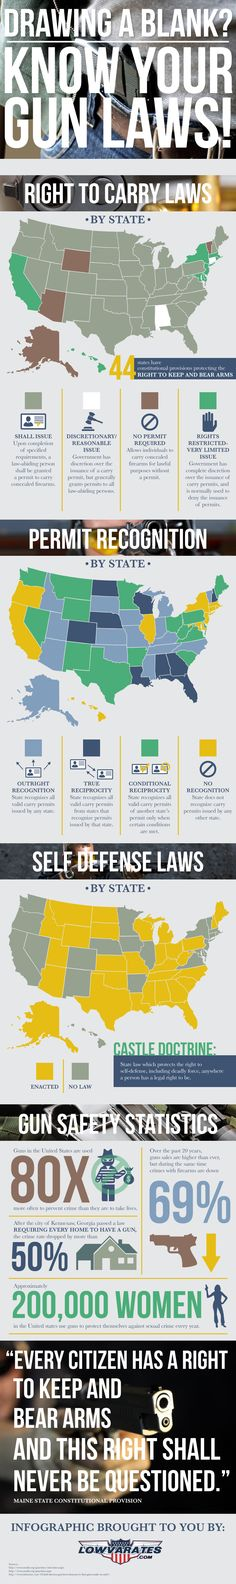 If you own, or carry a gun regularly, it's important that you know your gun laws and your rights. 44 states have constitutional provision protecting the right to keep and bear arm. However many state laws are different by state and you also need to consider federal gun laws as well. This infographic by LowVARates.com reviews those laws. Concealed Carry, Hunting, Guns, Map, Fun Facts, Carry On, Weapons Guns, Wtf Fun Facts, Weapons